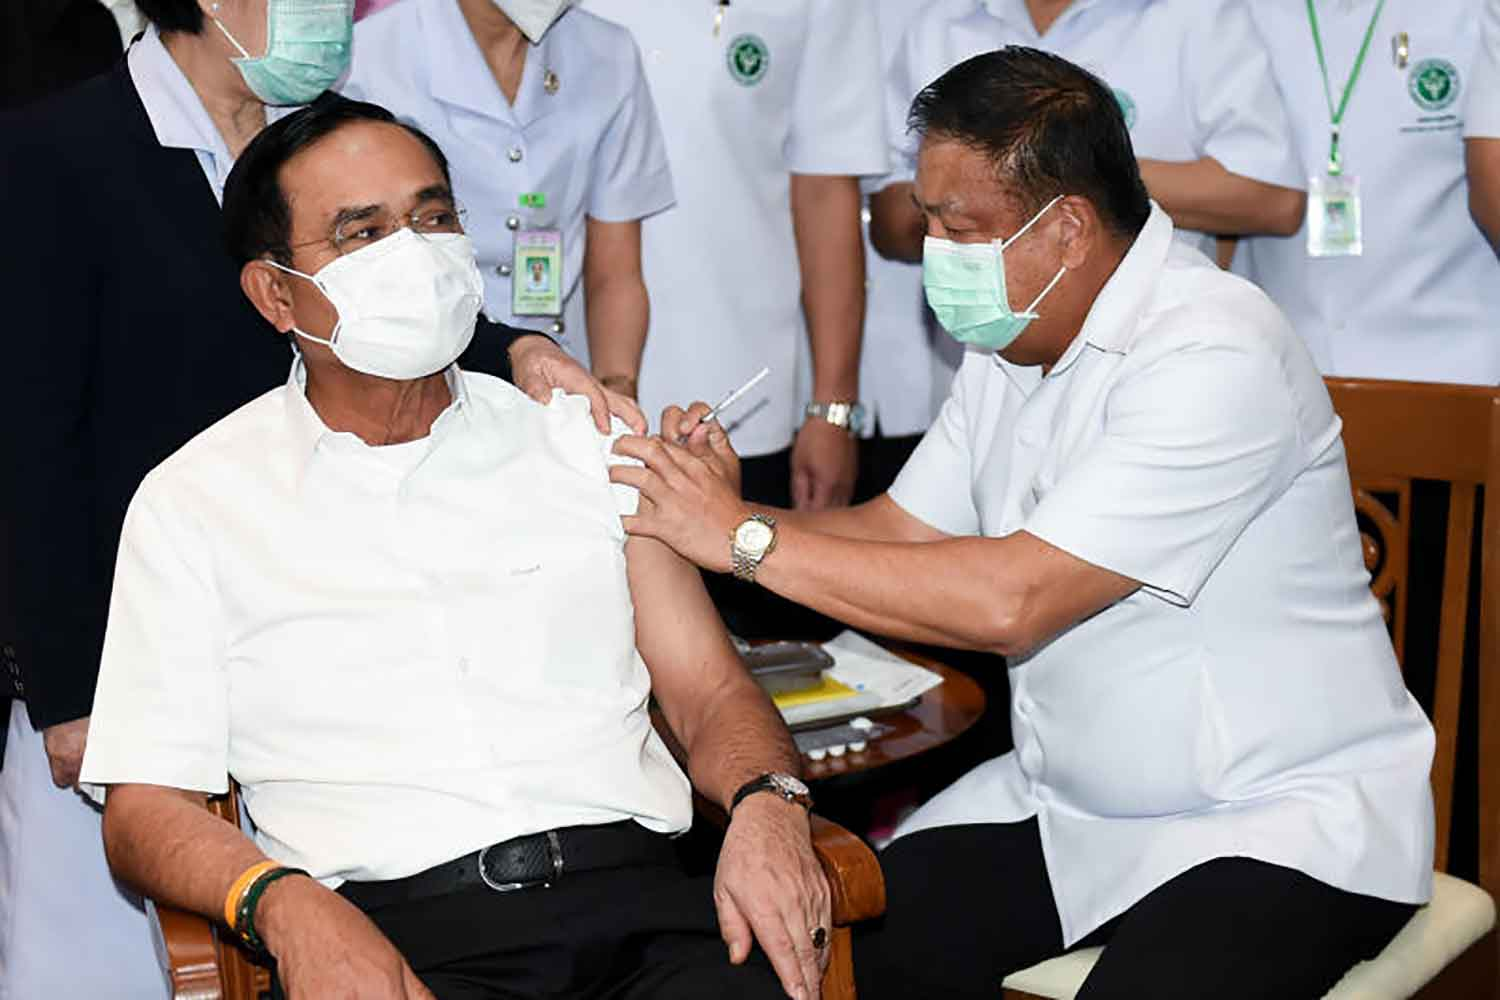 Prime Minister Prayut Chan-o-cha gets his second shot of the AstraZeneca Covid-19 vaccine on Monday at Bamrasnaradura Infectious Disease Institute in Nonthaburi province. He received his first jab on March 16. (Government House photo)